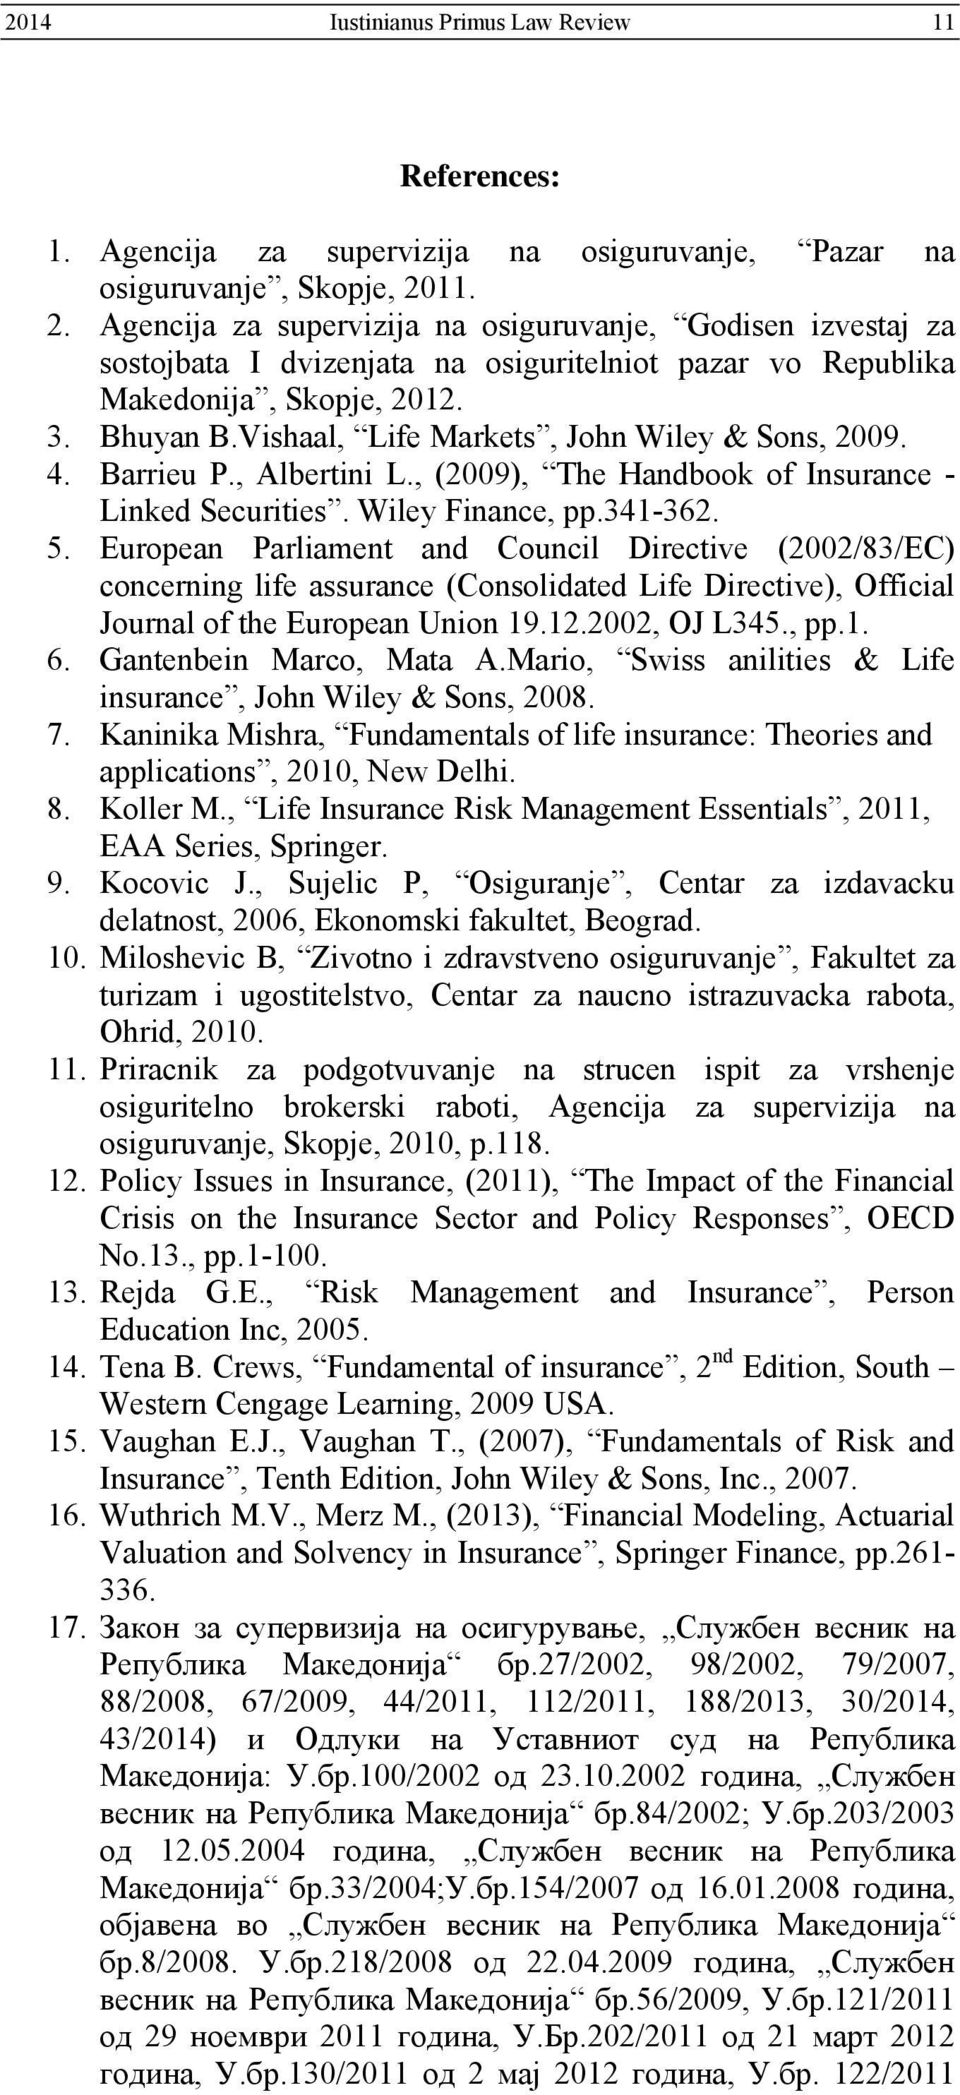 Vishaal, Life Markets, John Wiley & Sons, 2009. 4. Barrieu P., Albertini L., (2009), The Handbook of Insurance - Linked Securities. Wiley Finance, pp.341-362. 5.